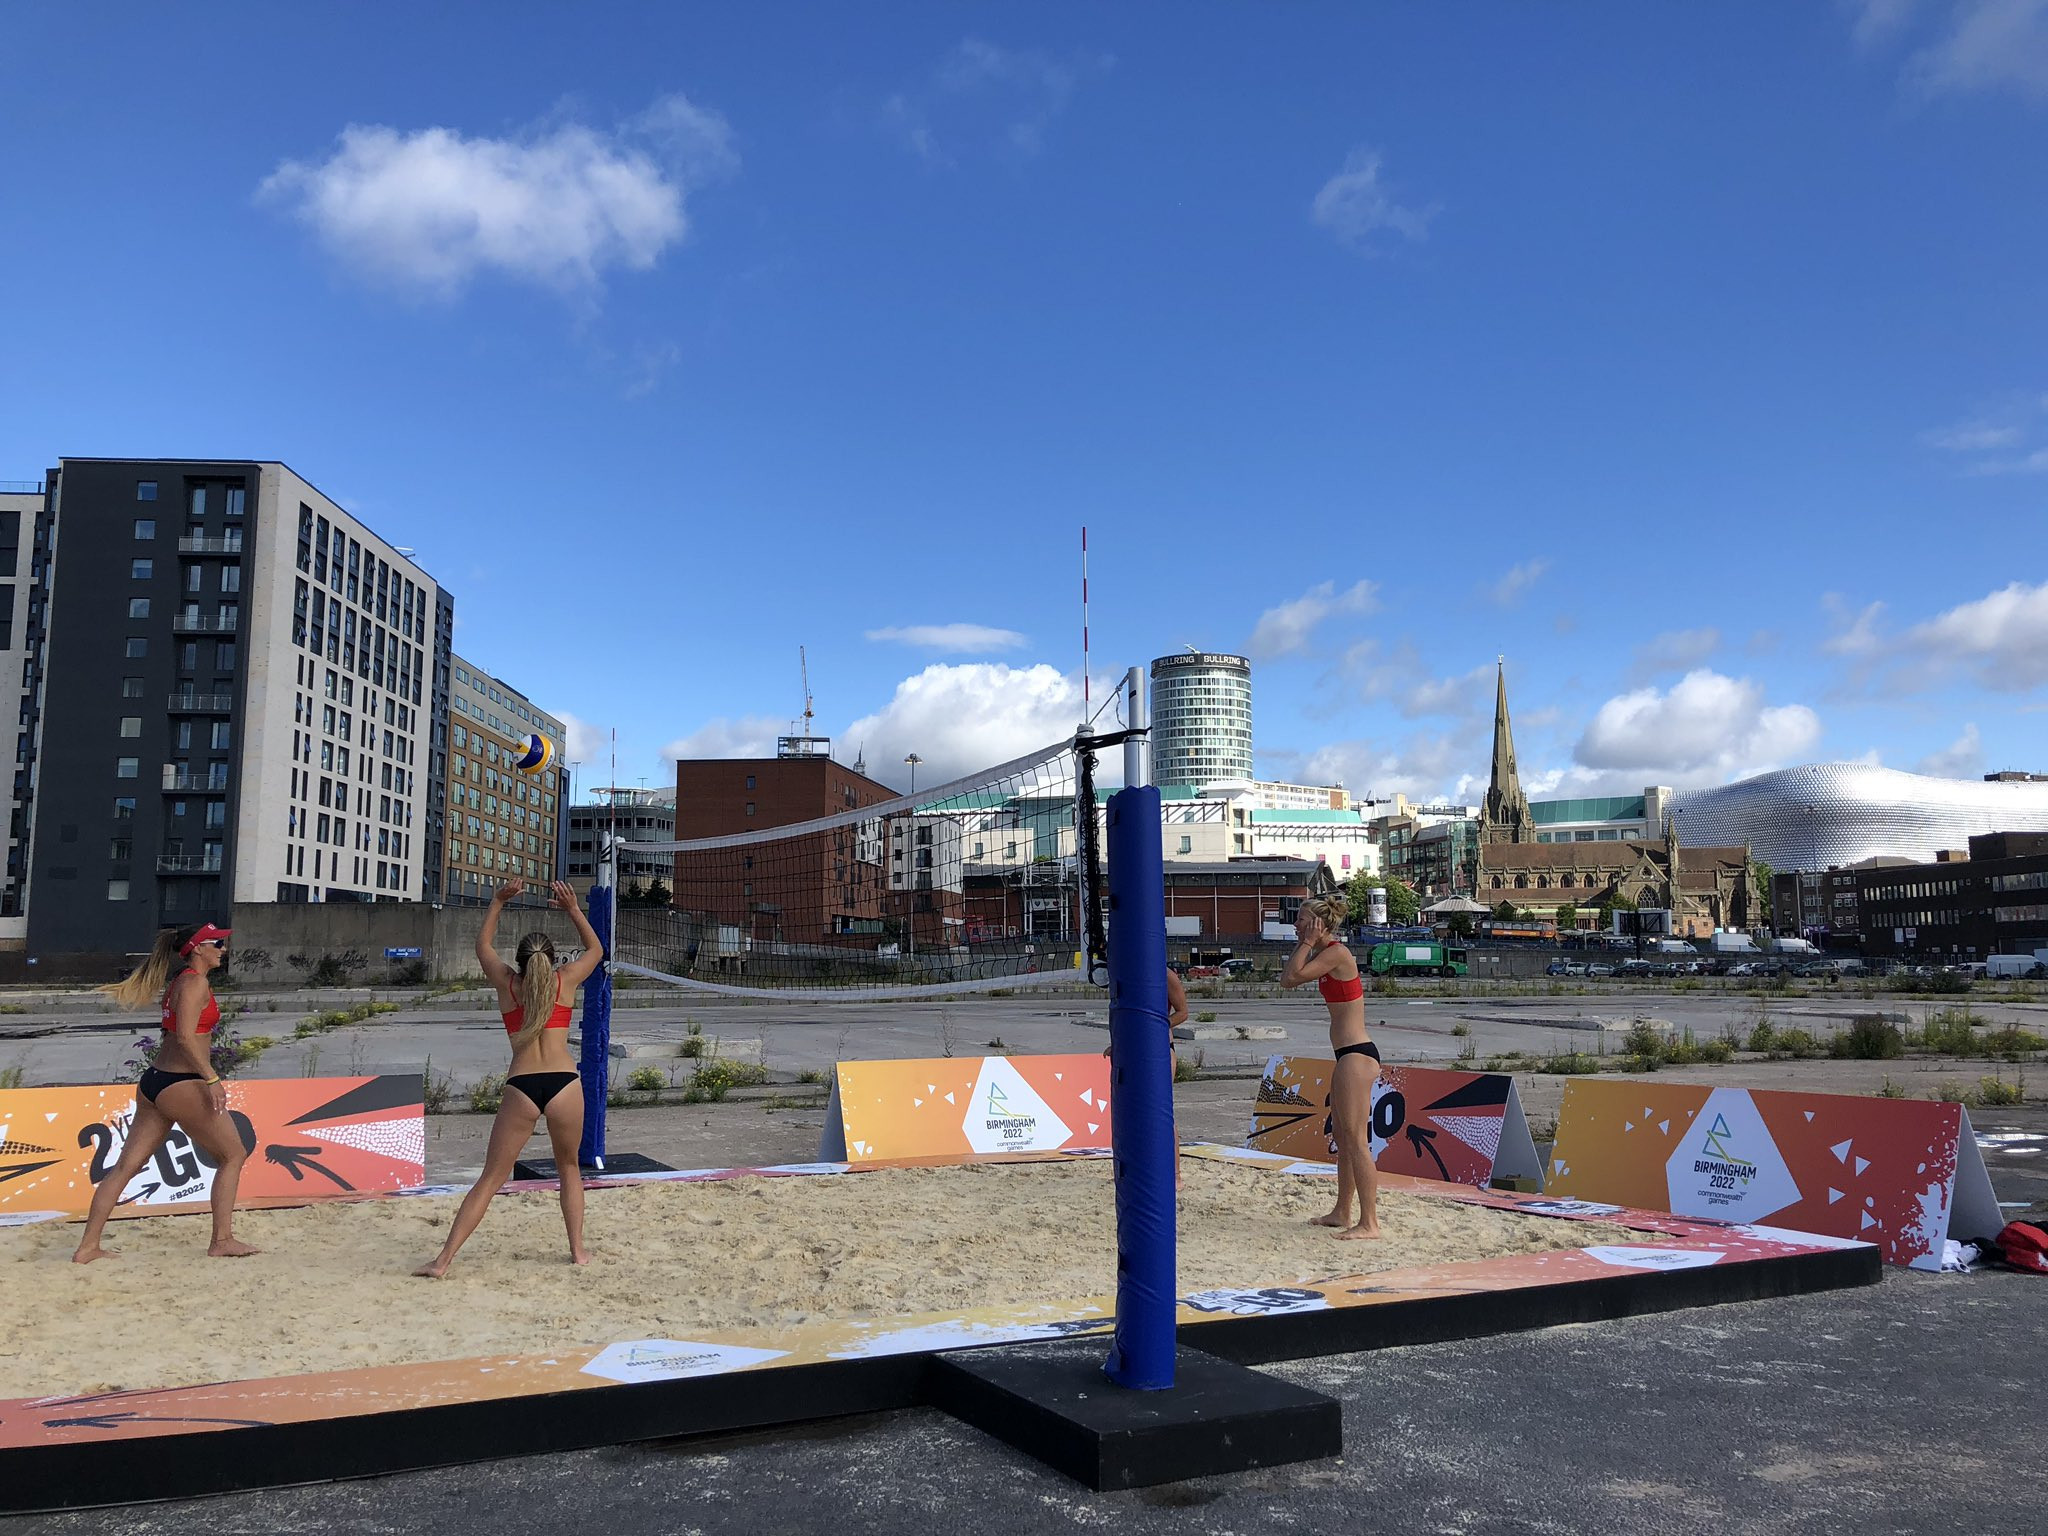 The 3x3 basketball and beach volleyball competitions at the Commonwealth Games are set to take place in the centre of Birmingham ©ITG